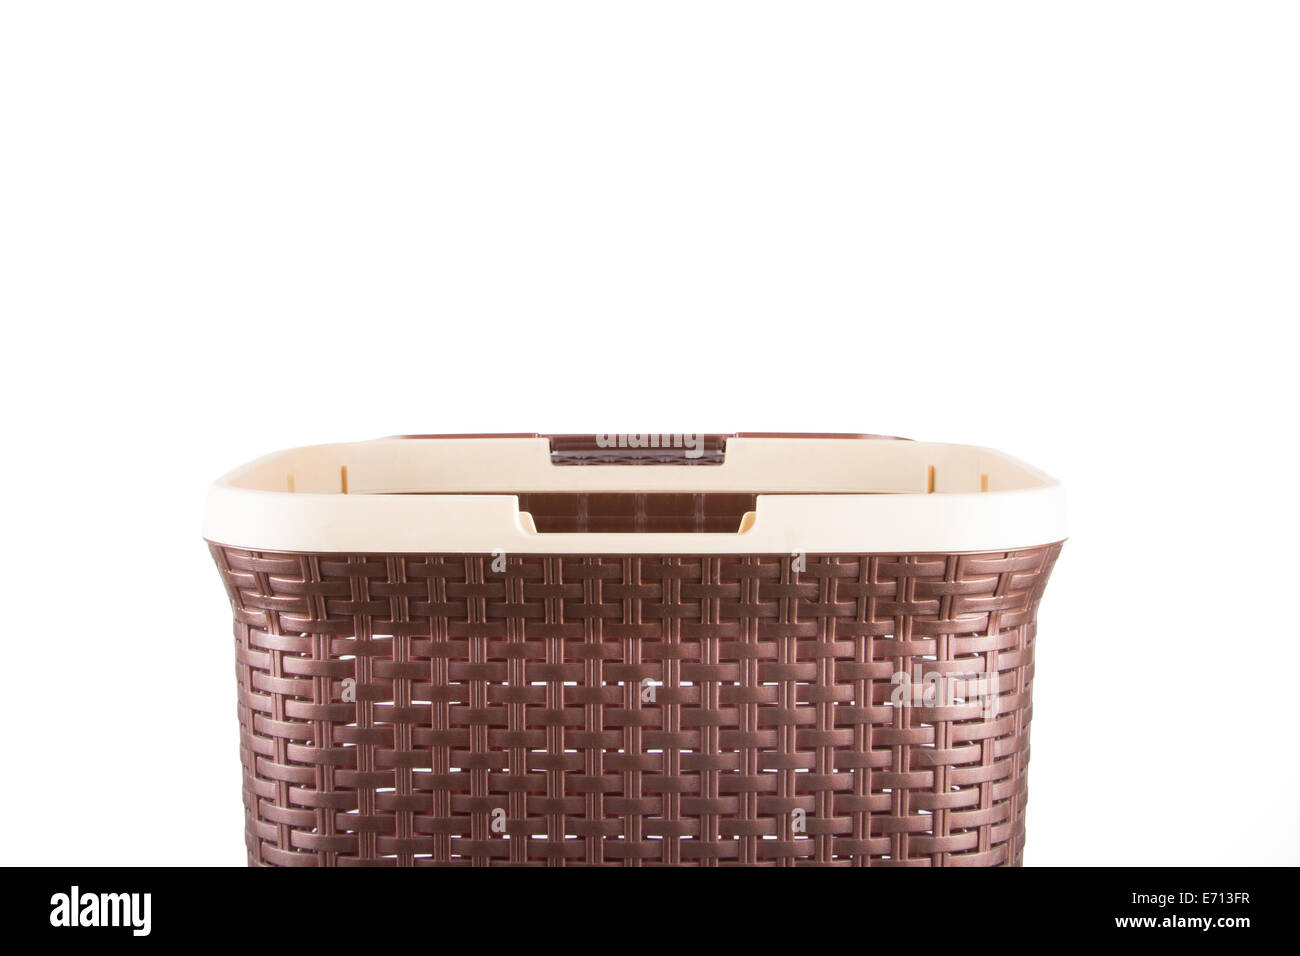 Closed Laundry Basket Laundry Basket Stock Photos And Laundry Basket Stock Images